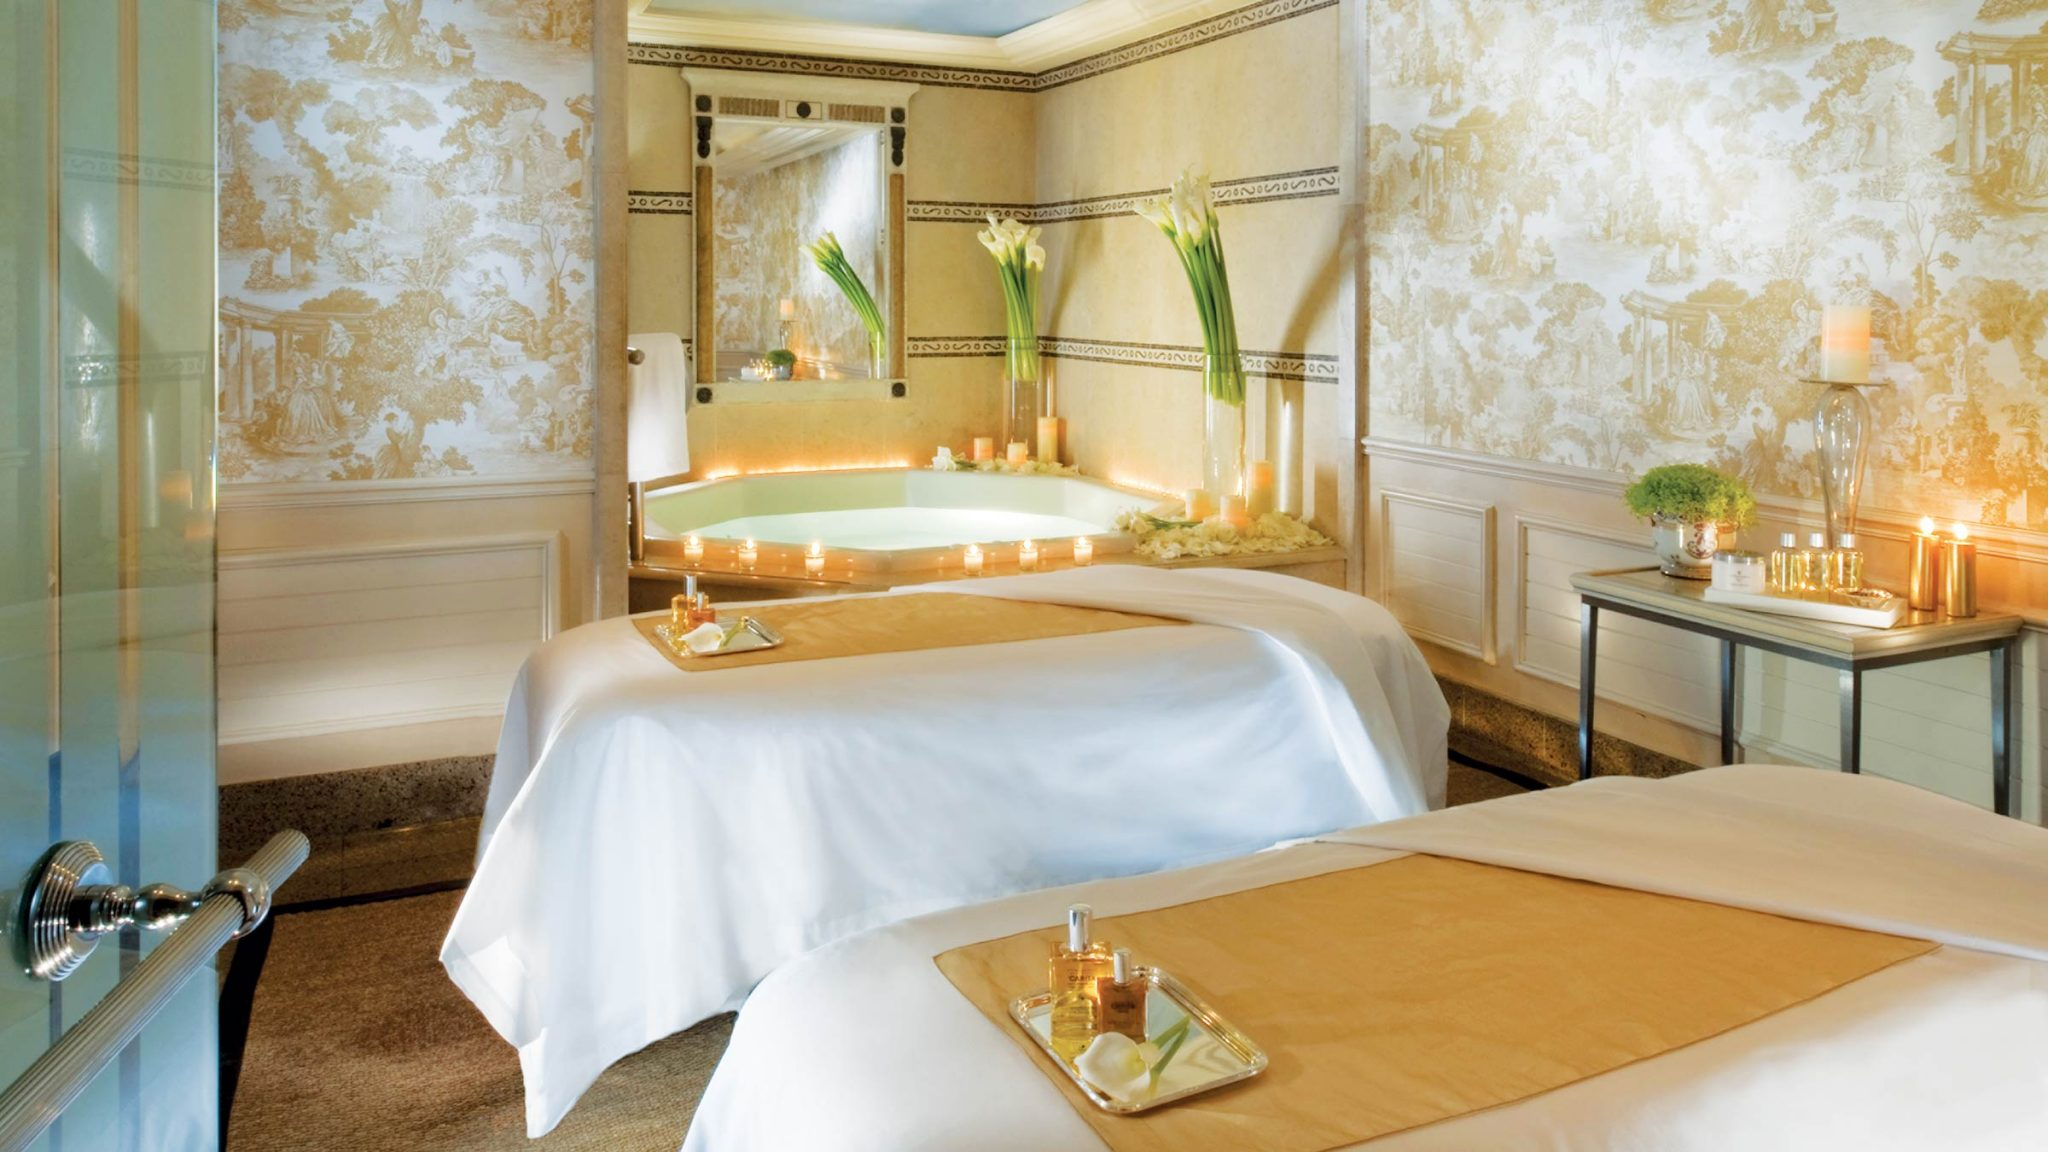 An unforgettable vacation by four seasons paris Four season rooms